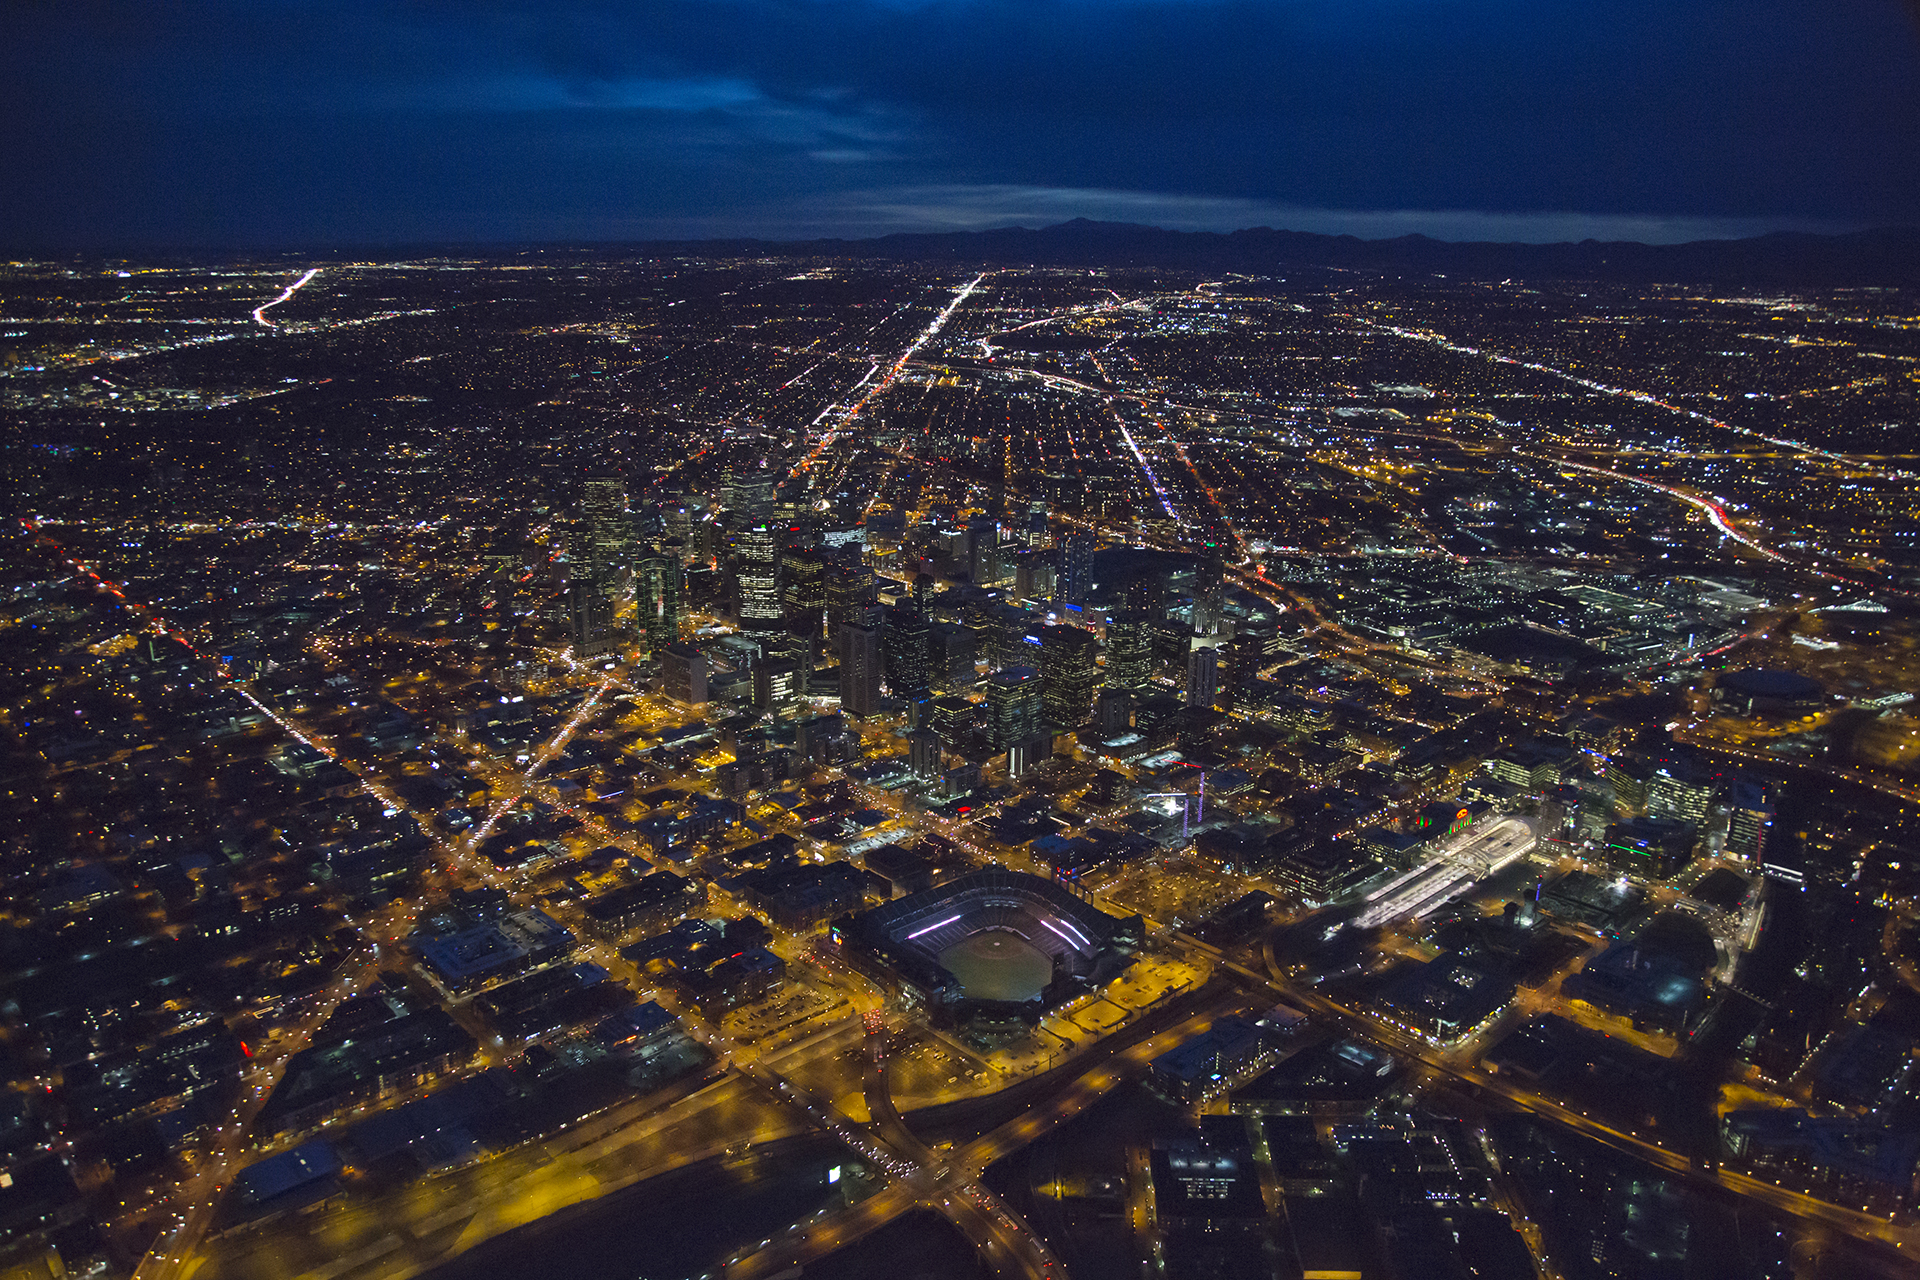 Denver Sunset Aerial Image